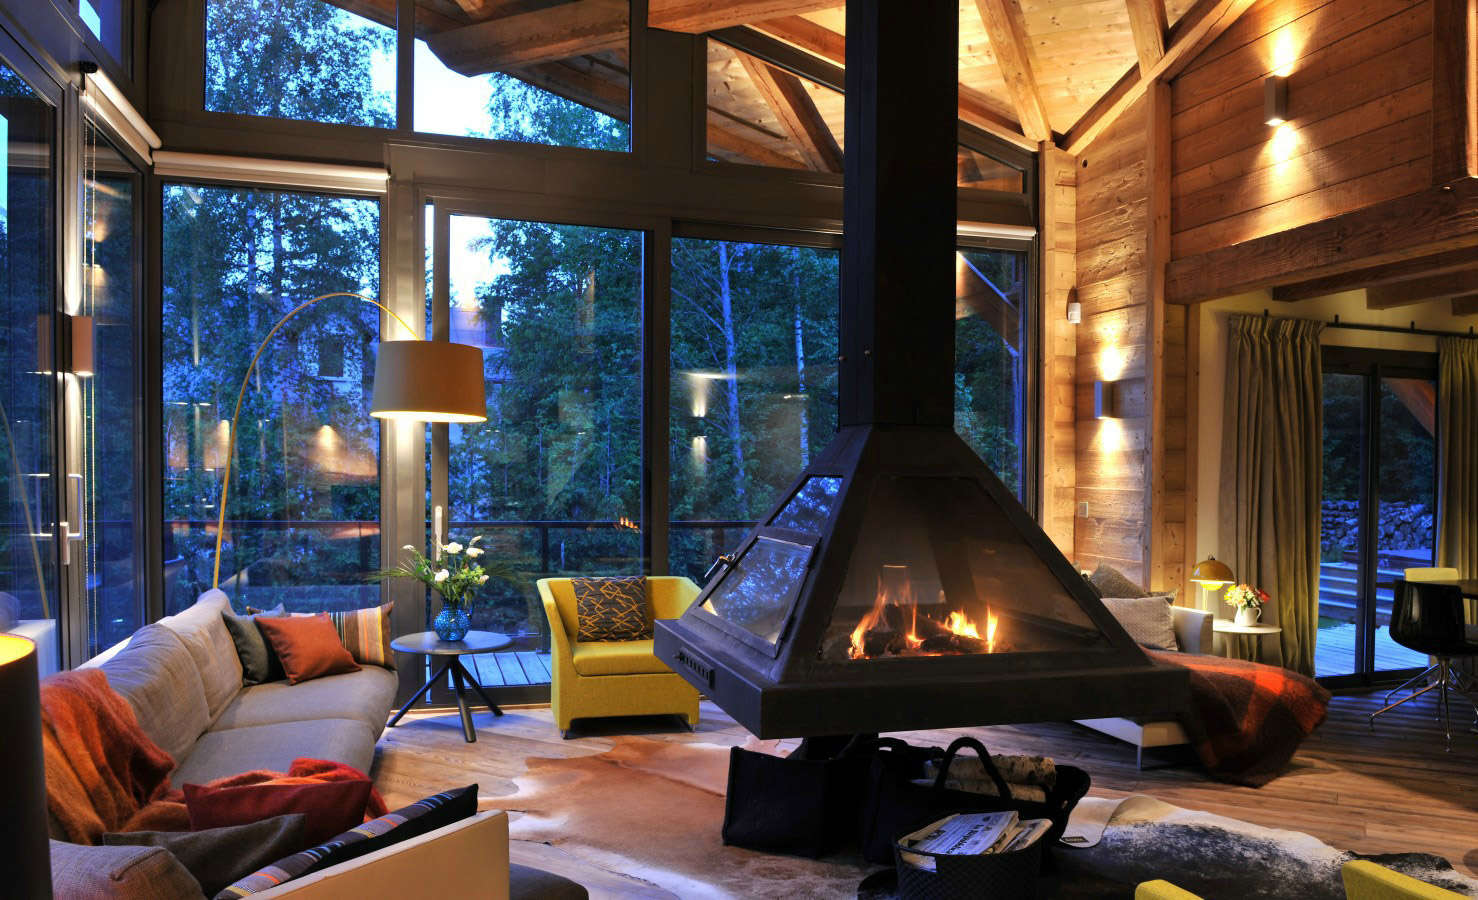 Cozy mood in a luxury cabin